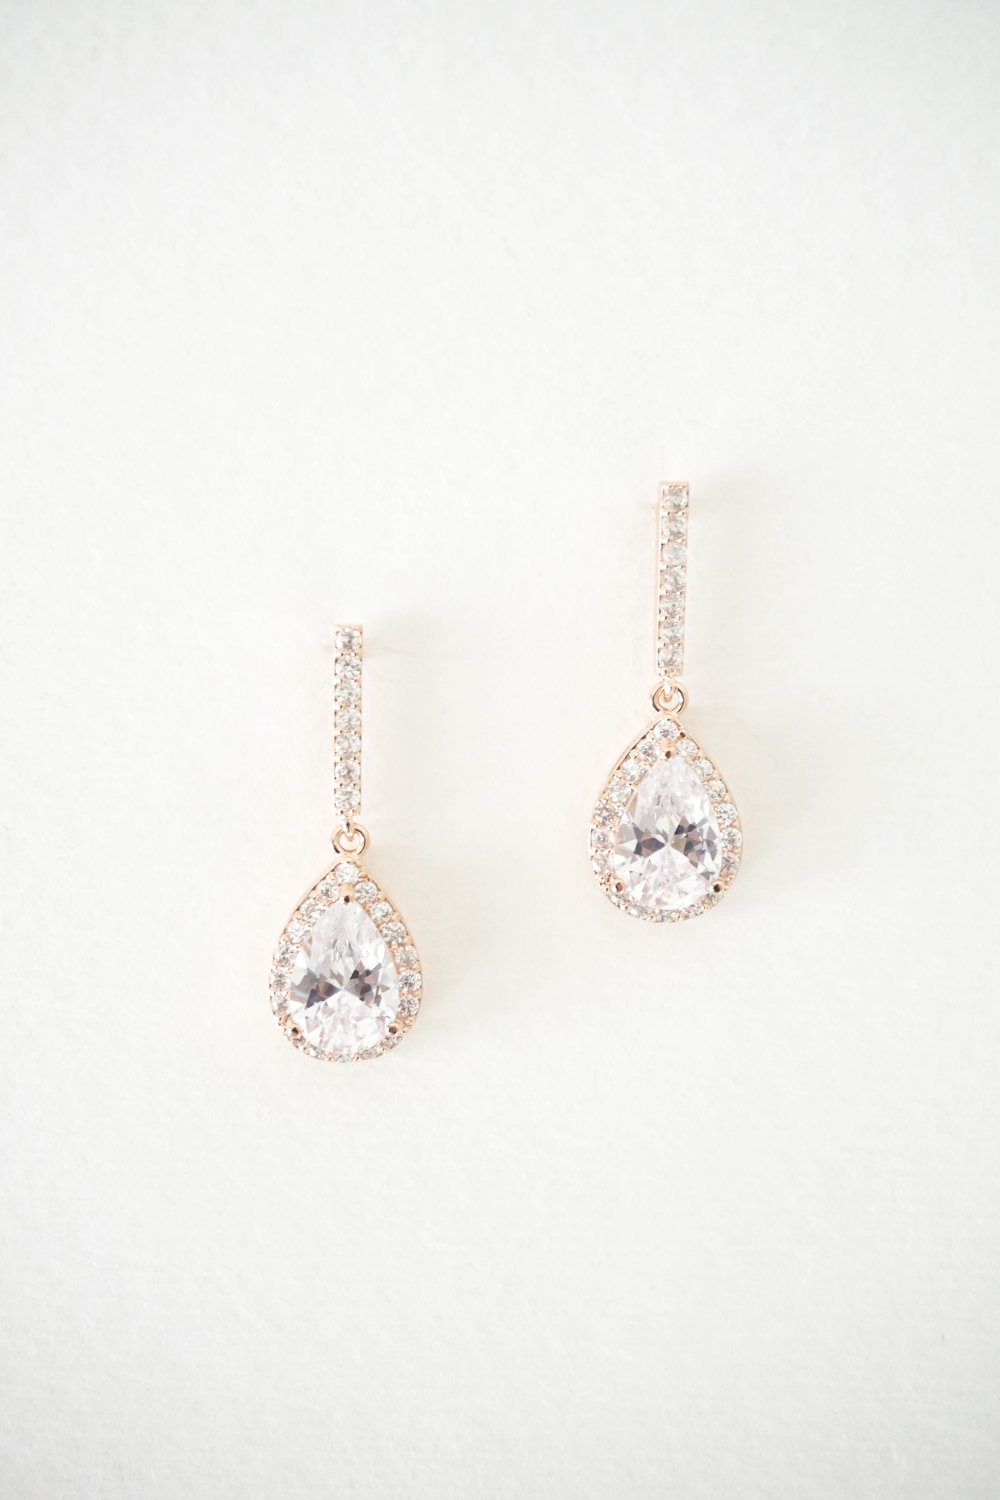 Bridal-Earrings-Photoshoot-with-Wink-of-Pink-Shop-Commercial-Photography-Bridal-Jewelry11.jpg